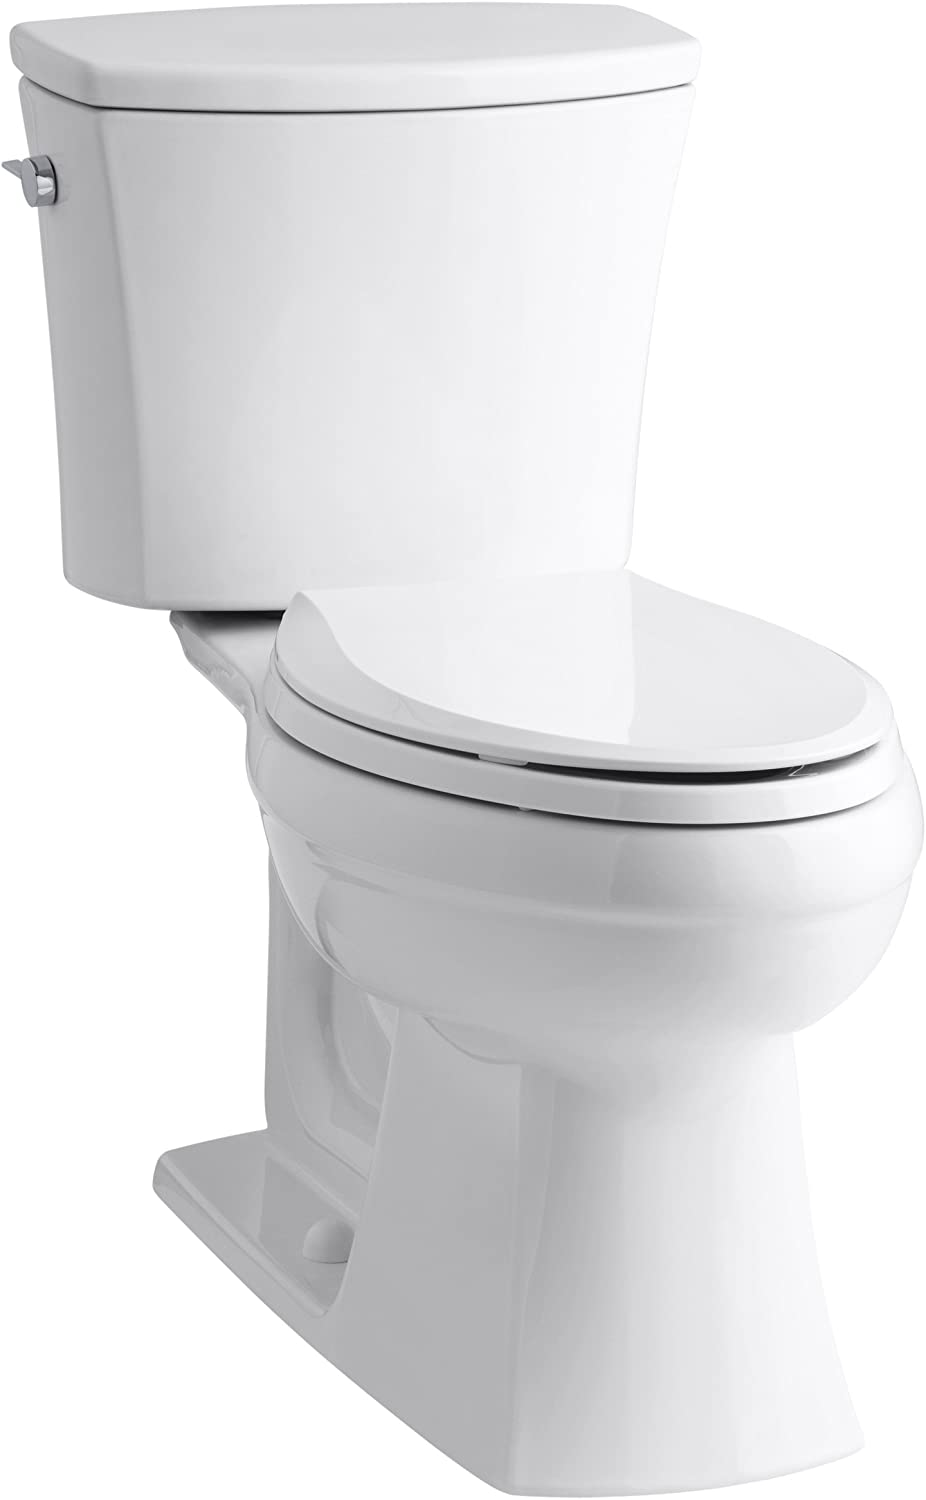 Kohler K 3754 0 Kelston Comfort Height Two Piece Elongated 1 6 Gpf Toilet With Aquapiston Flush Technology And Left Hand Trip Lever White Kelston Kohler Toliets Amazon Com